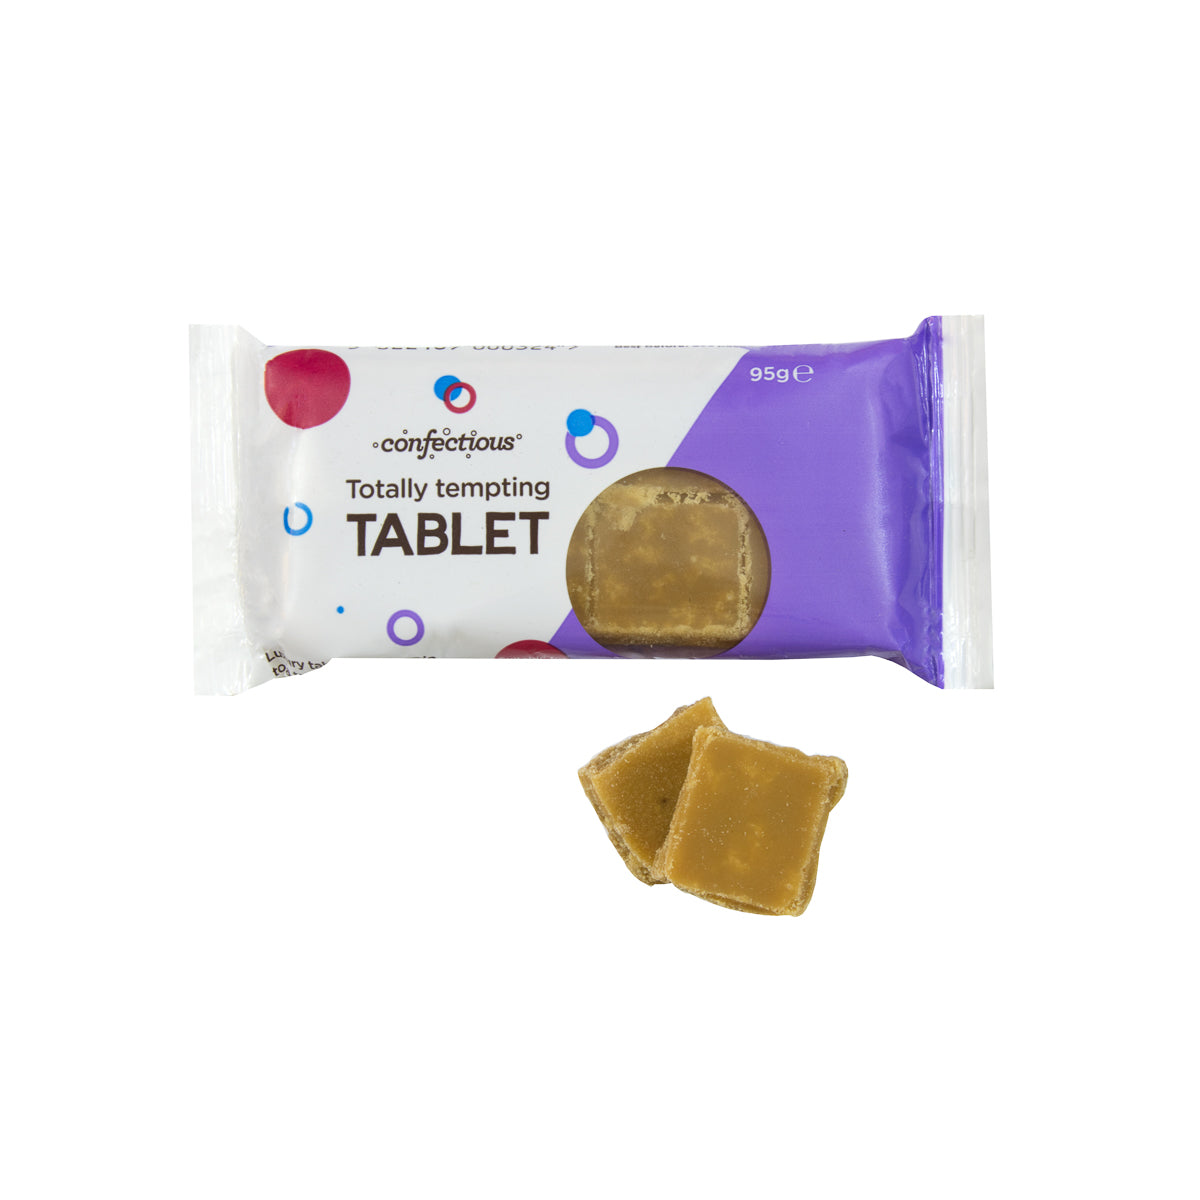 Scottish Totally Tempting Tablet 95g Bar